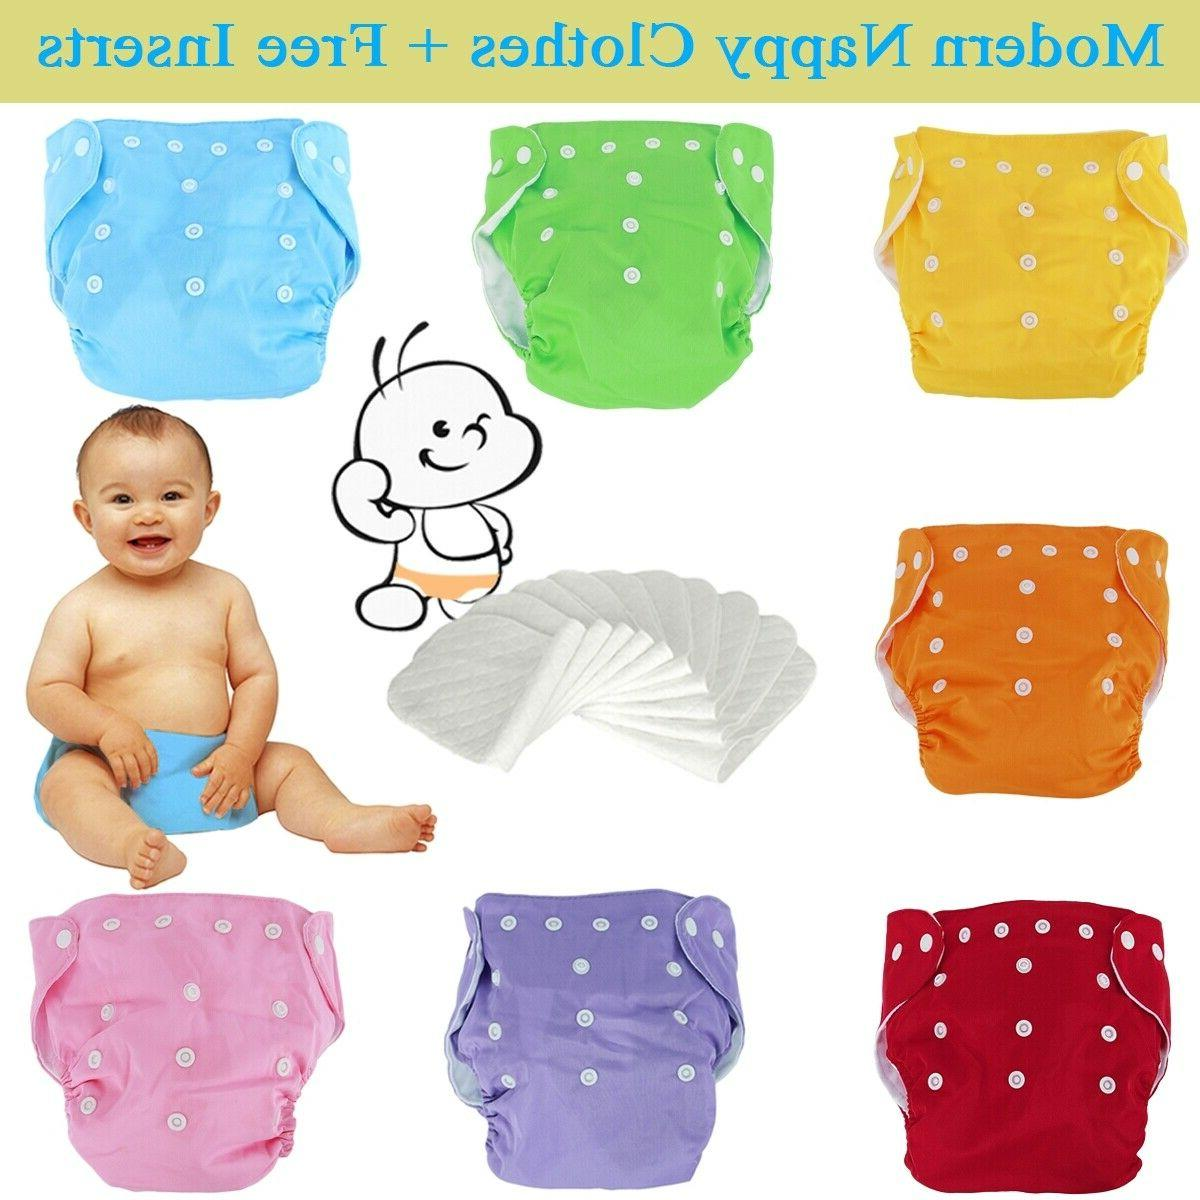 washable cloth diapers adjustable reusable nappies set